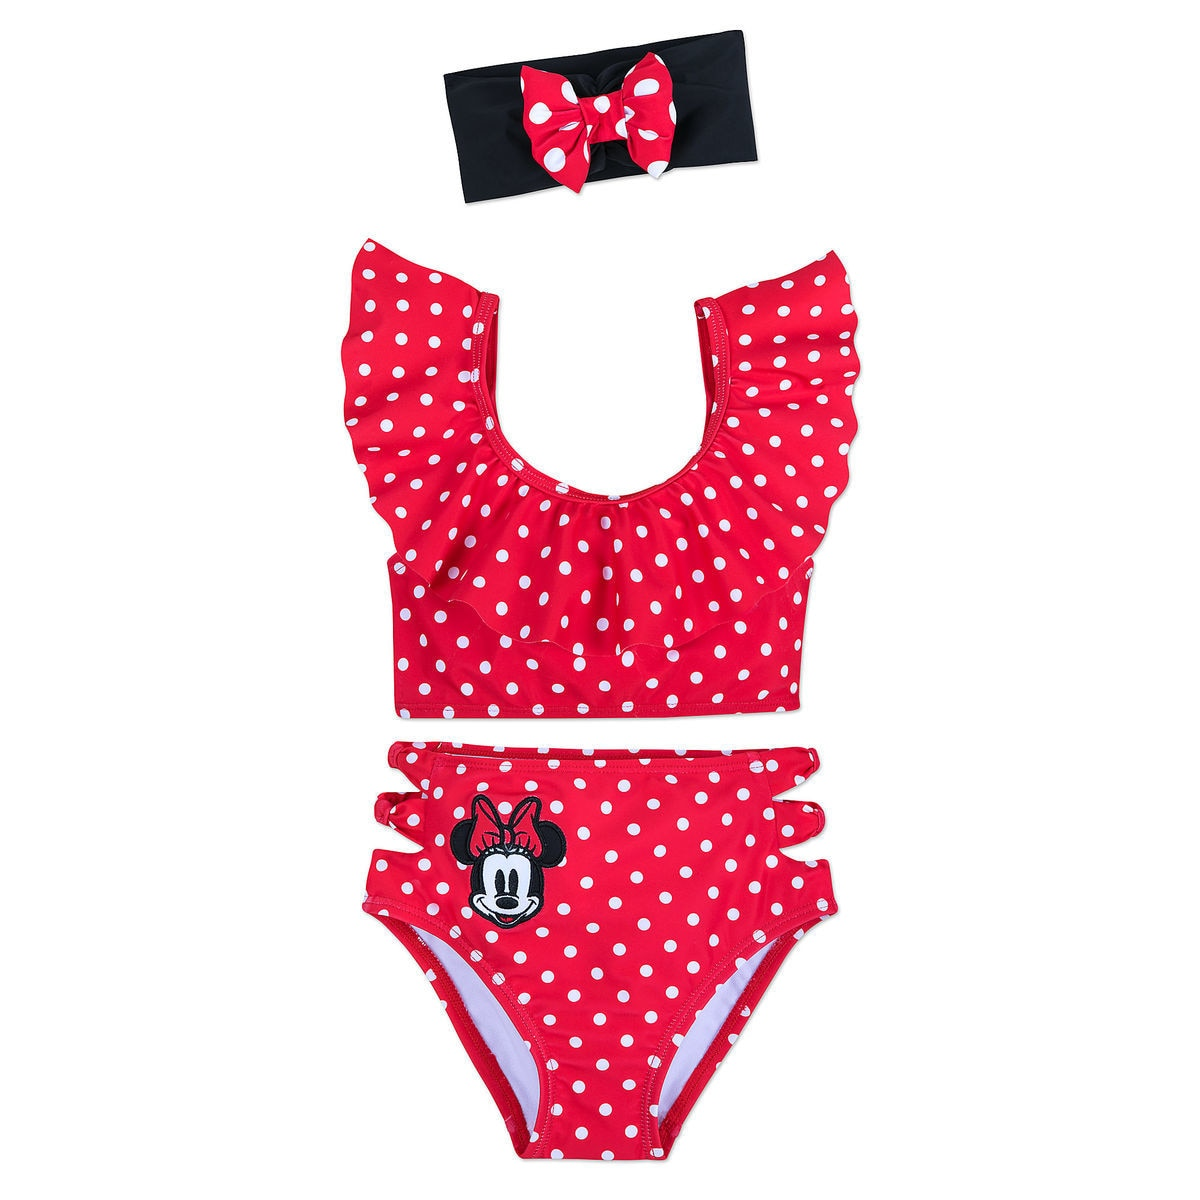 635306a871 Product Image of Minnie Mouse Deluxe Swimsuit Set for Girls   1